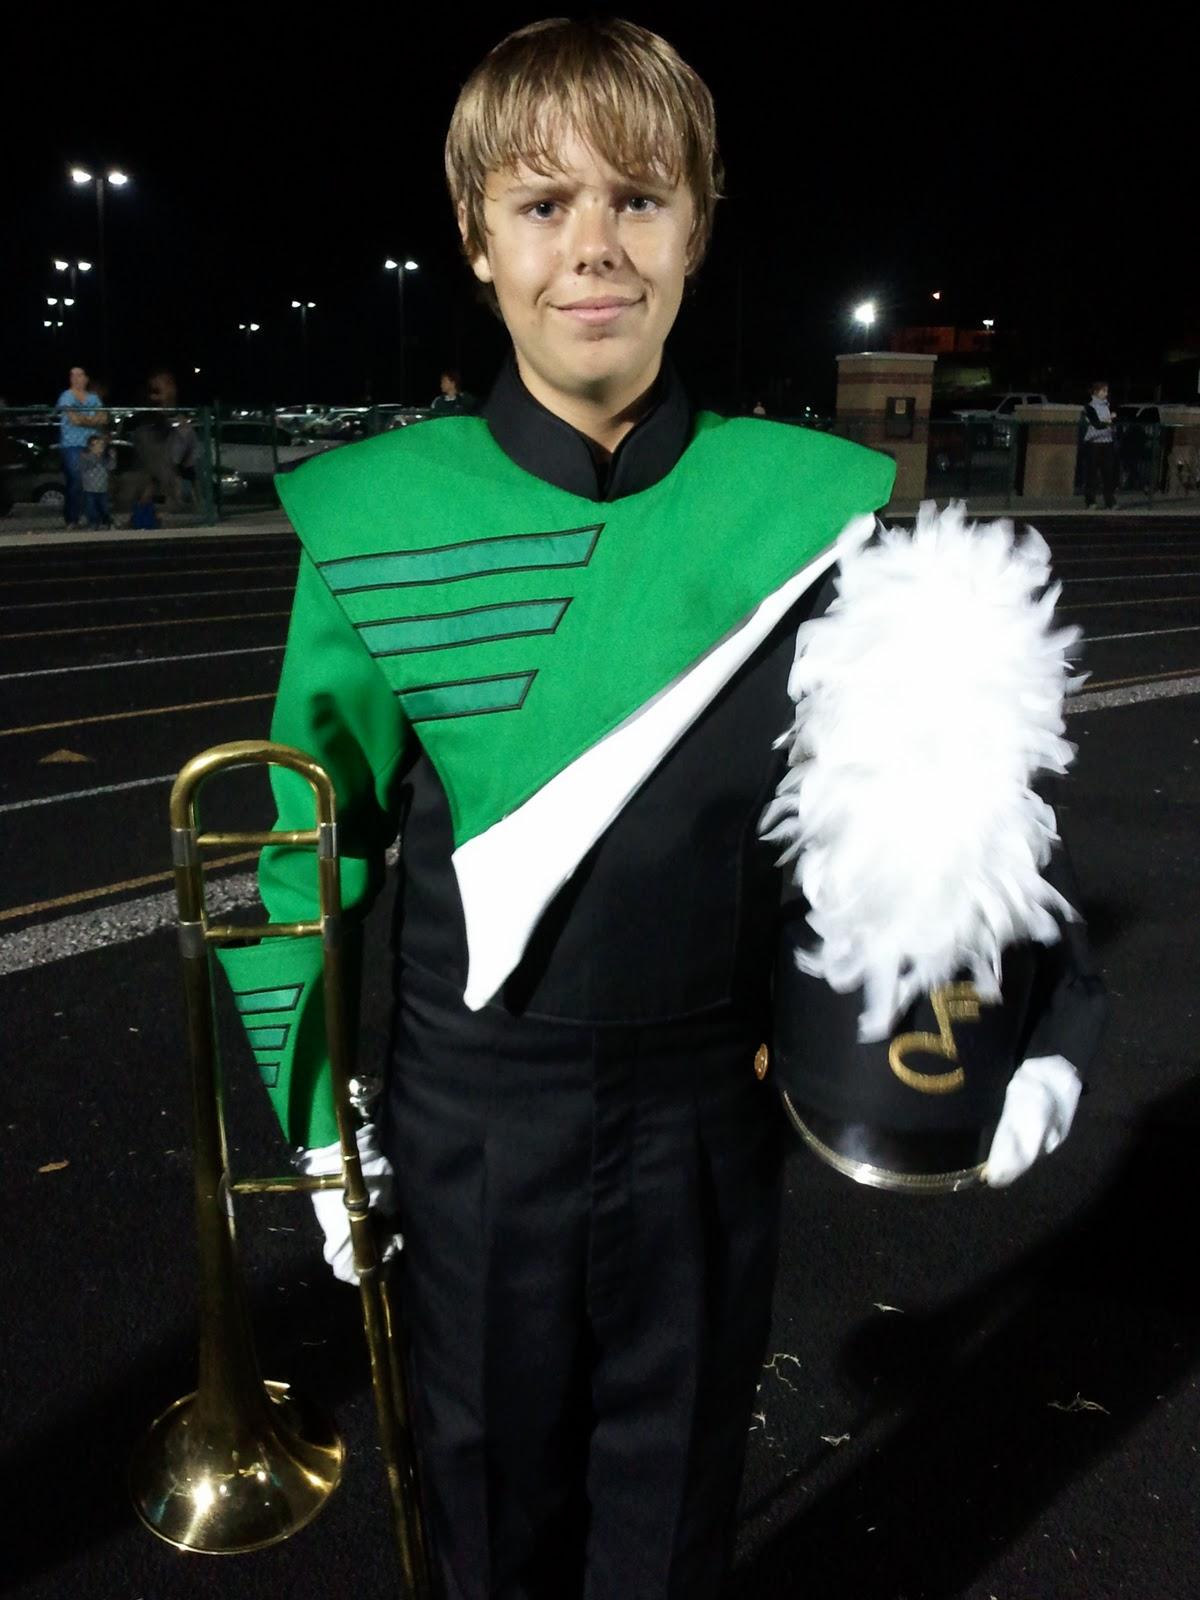 The Teen in his marching band uniform